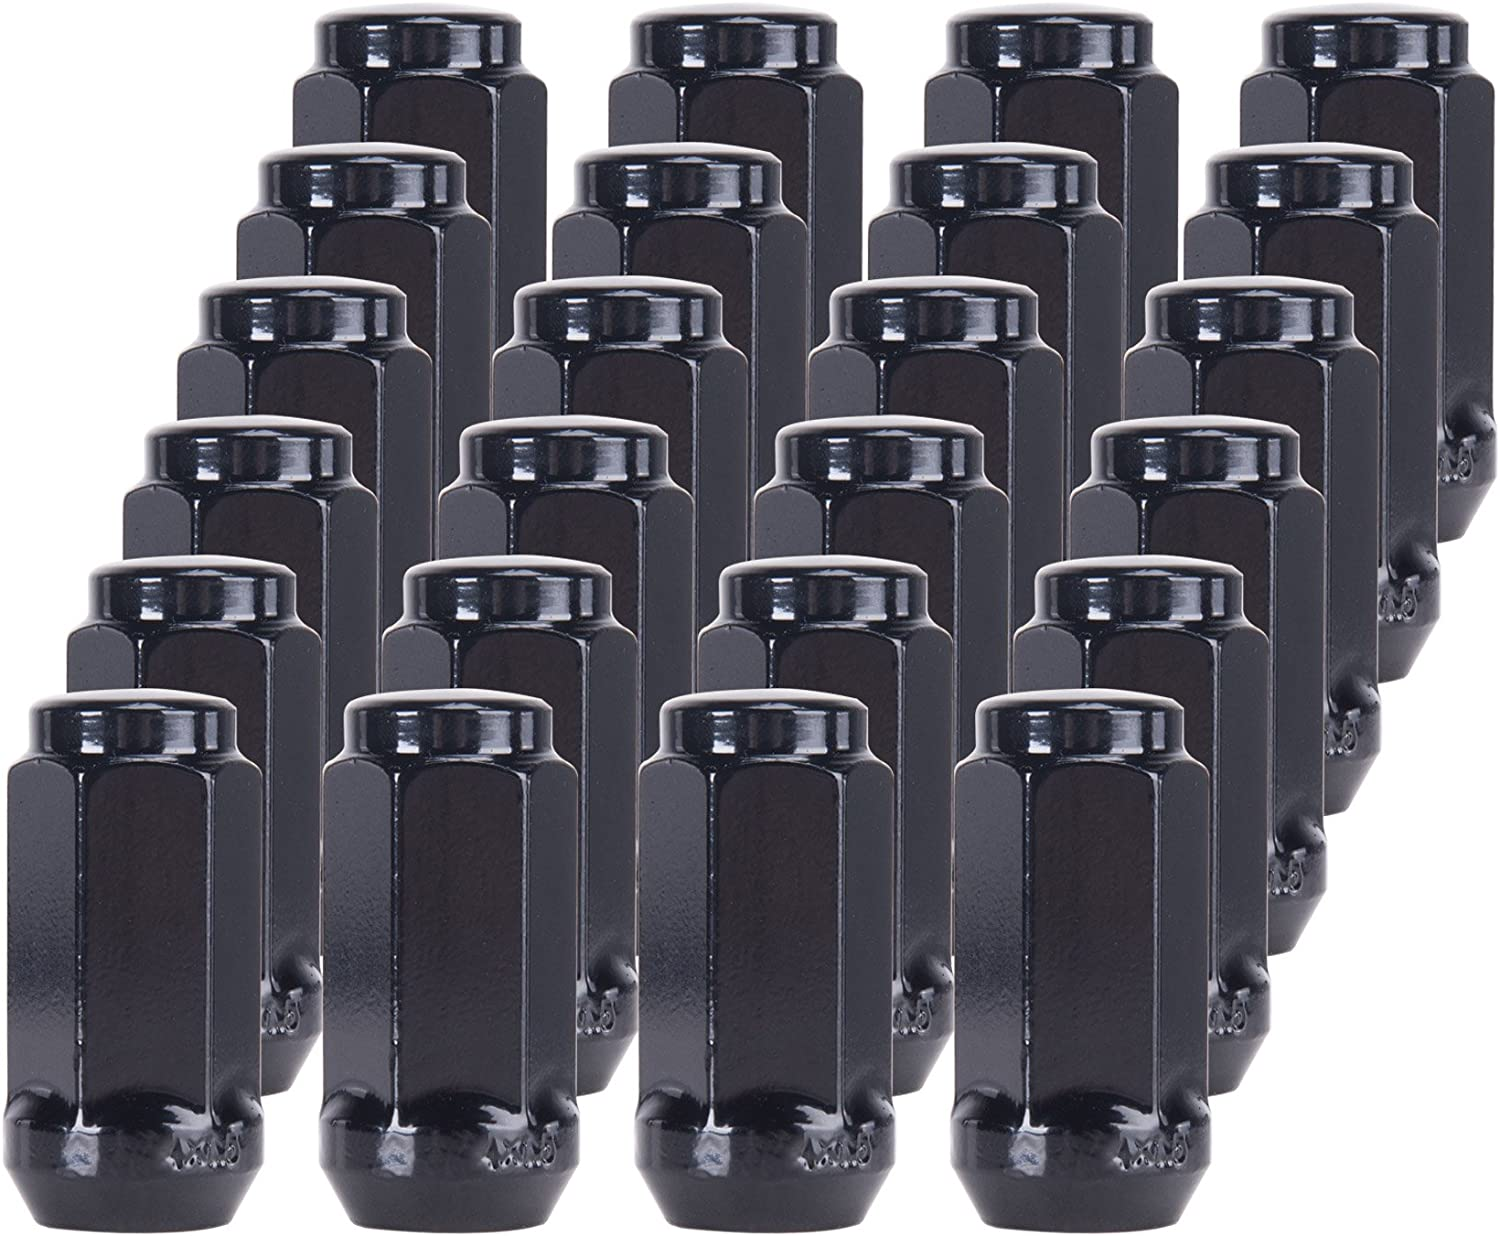 20pcs Chrome 14mm X 1.50 Wheel Lug Nuts fit 2012 Chevrolet Suburban 1500 May Fit OEM Rims Buyer Needs to Review The spec